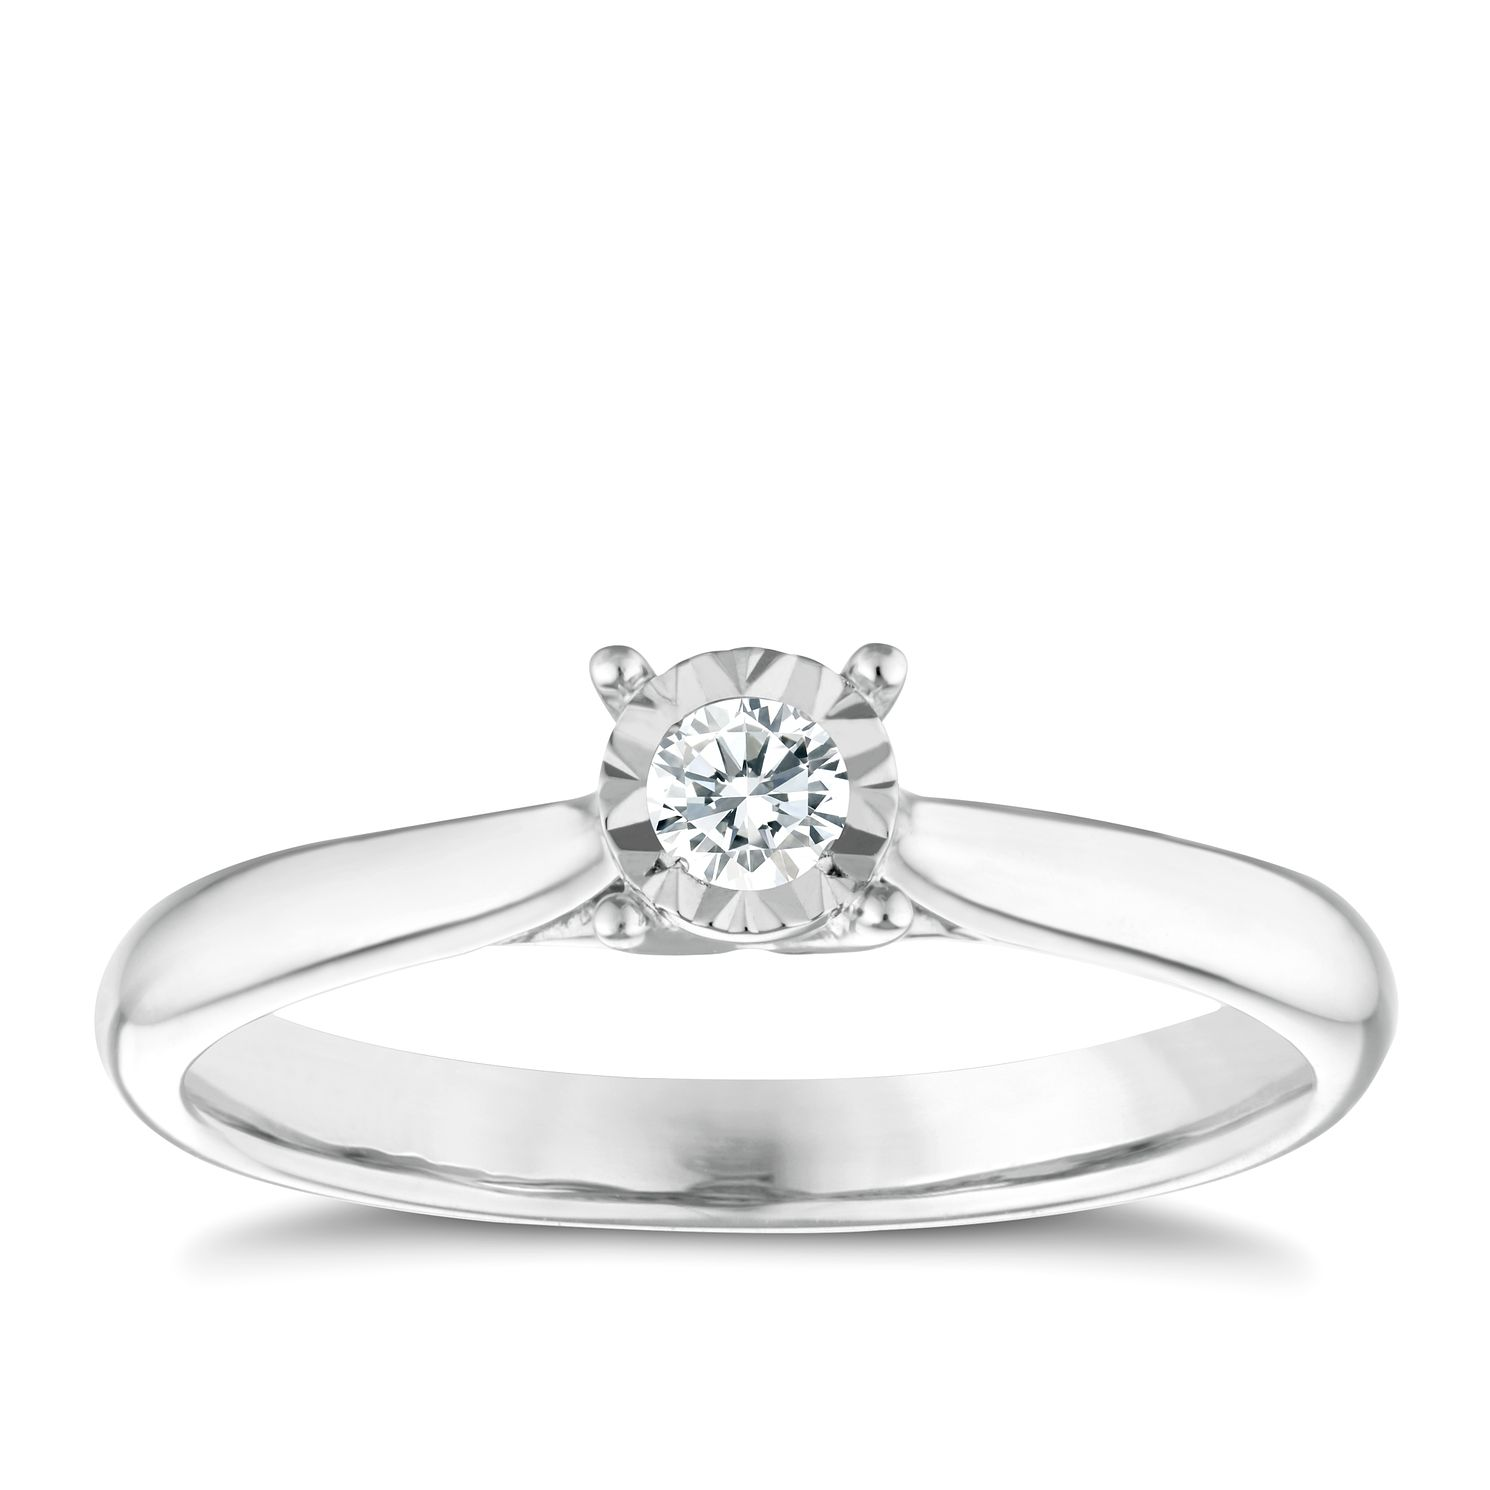 Ernest Jones 9ct White Gold Diamond Illusion Set Solitaire